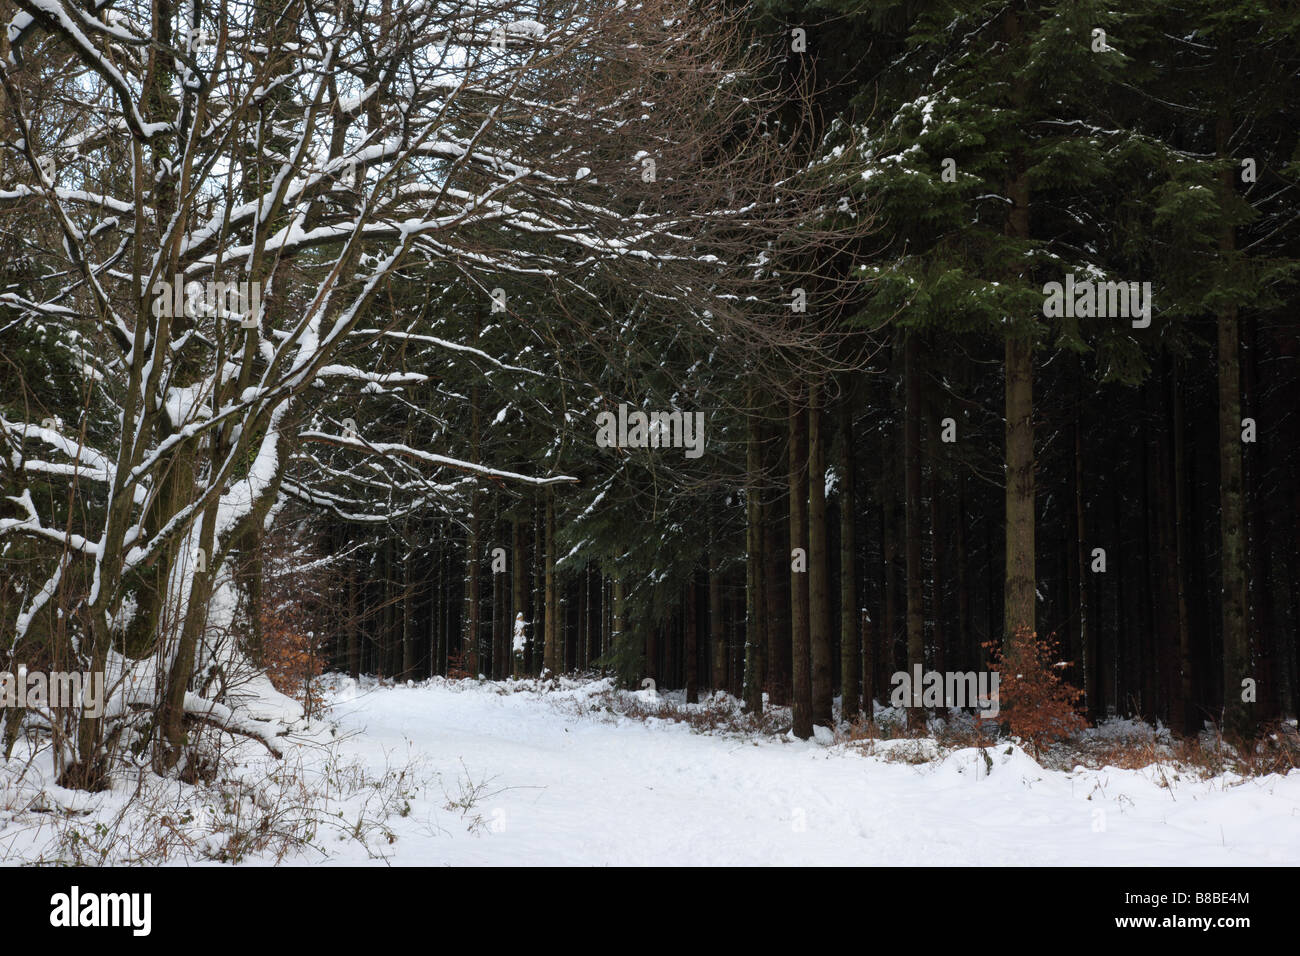 Snow at Heavens Gate, Longleat, Wiltshire, England - Stock Image